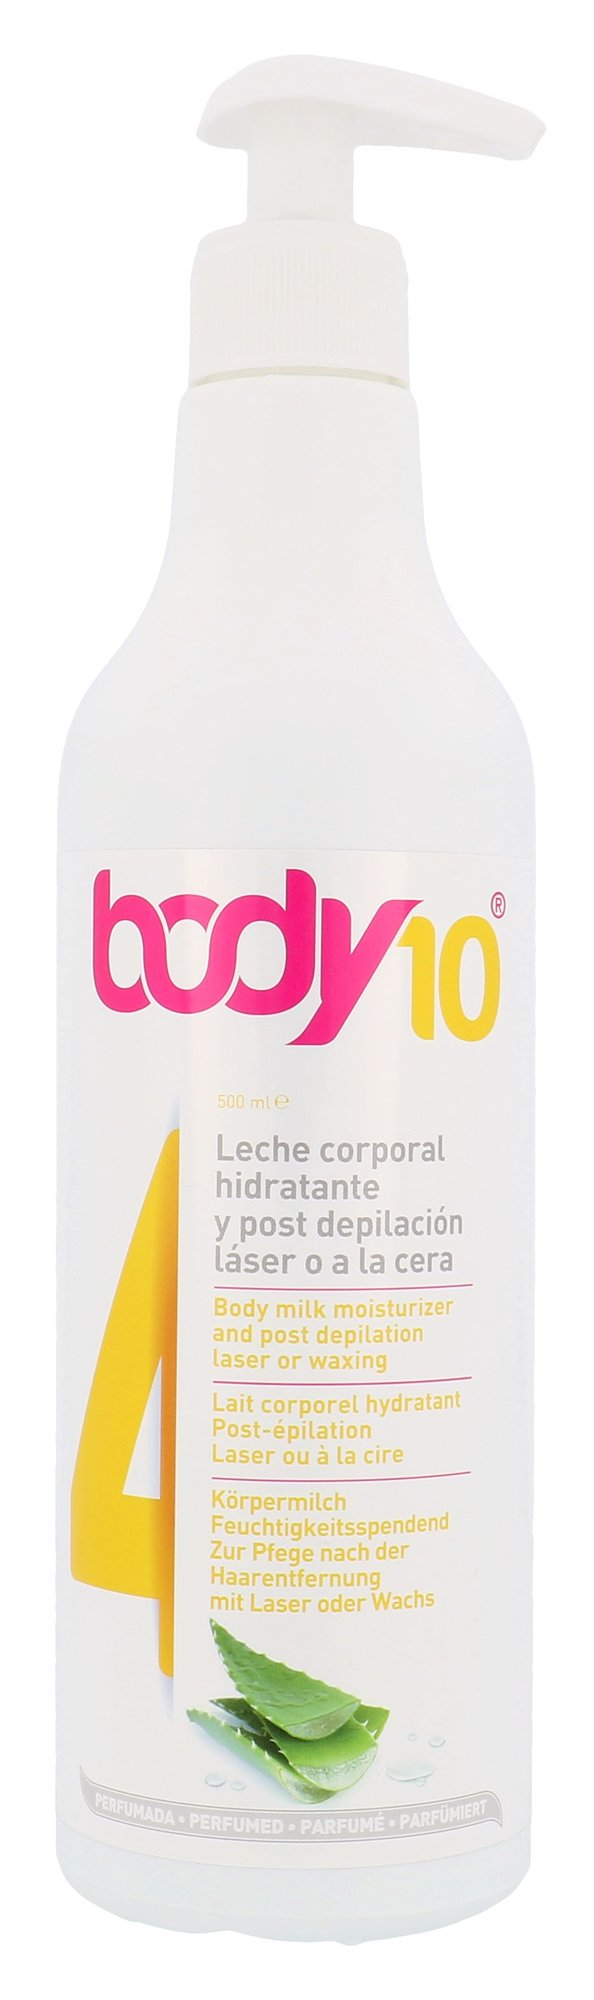 Diet Esthetic Body 10 Cosmetic 500ml